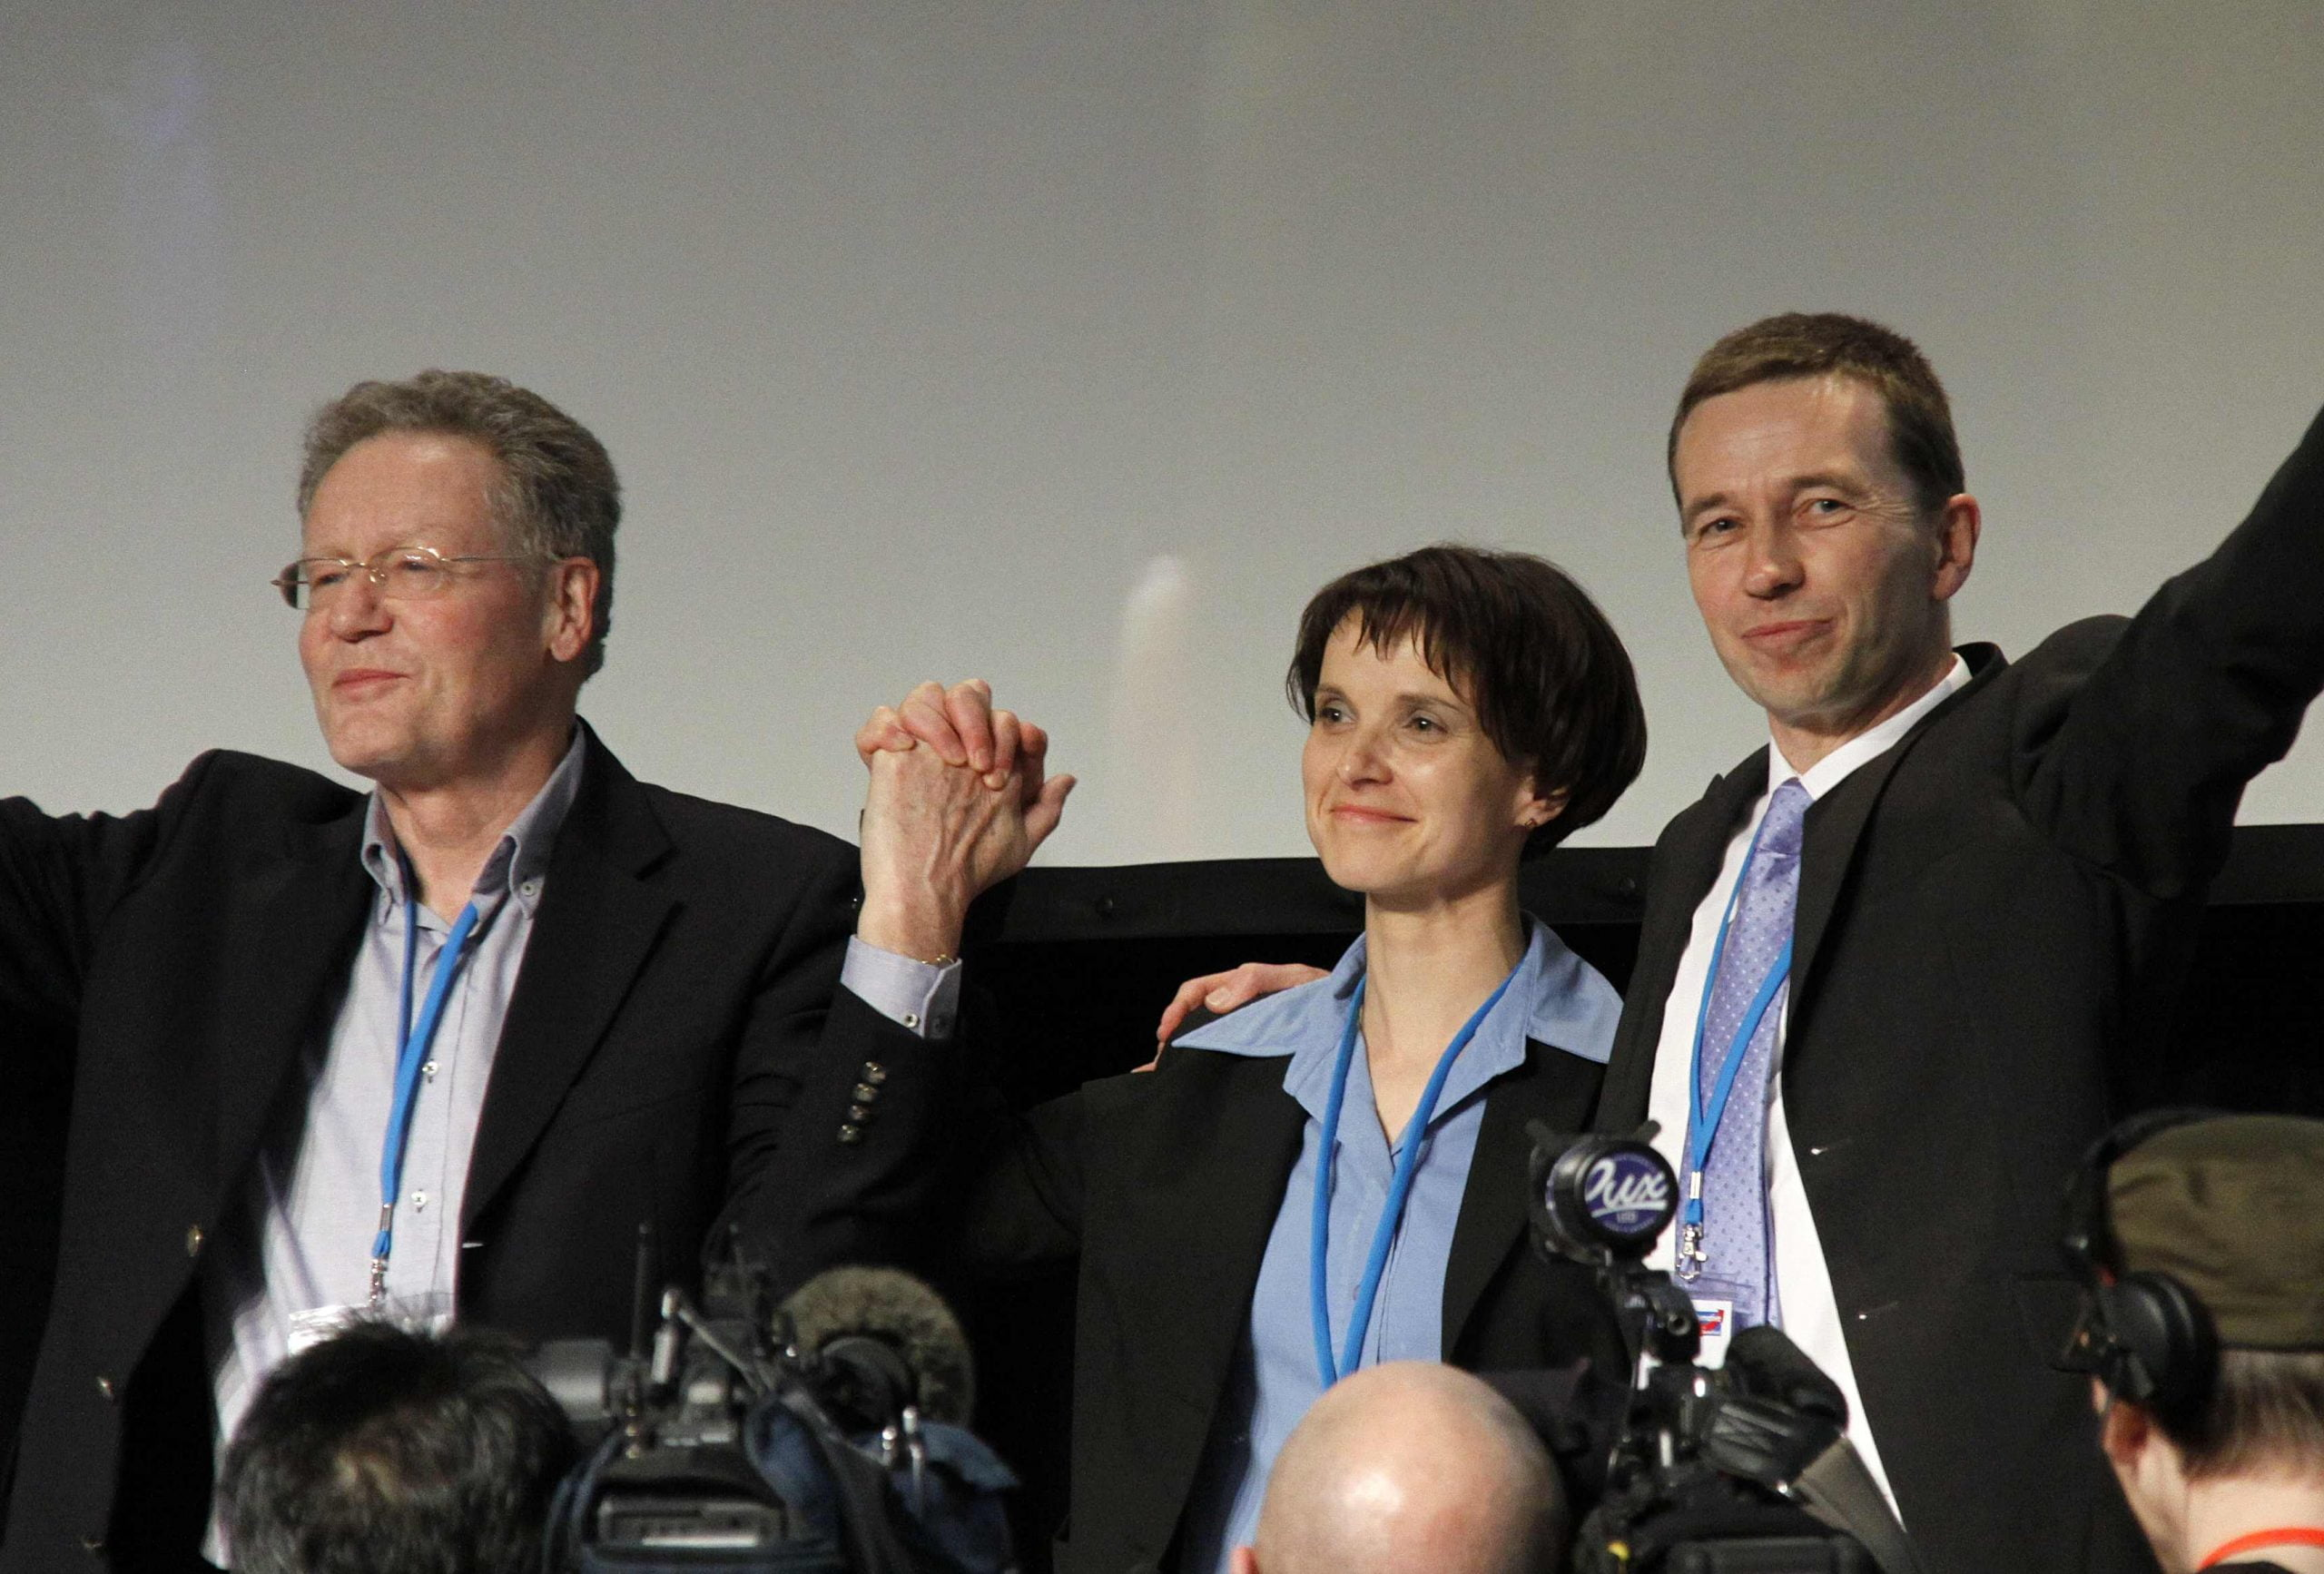 The CDU urges greens and social democrats to present a consensus candidate in Thuringia